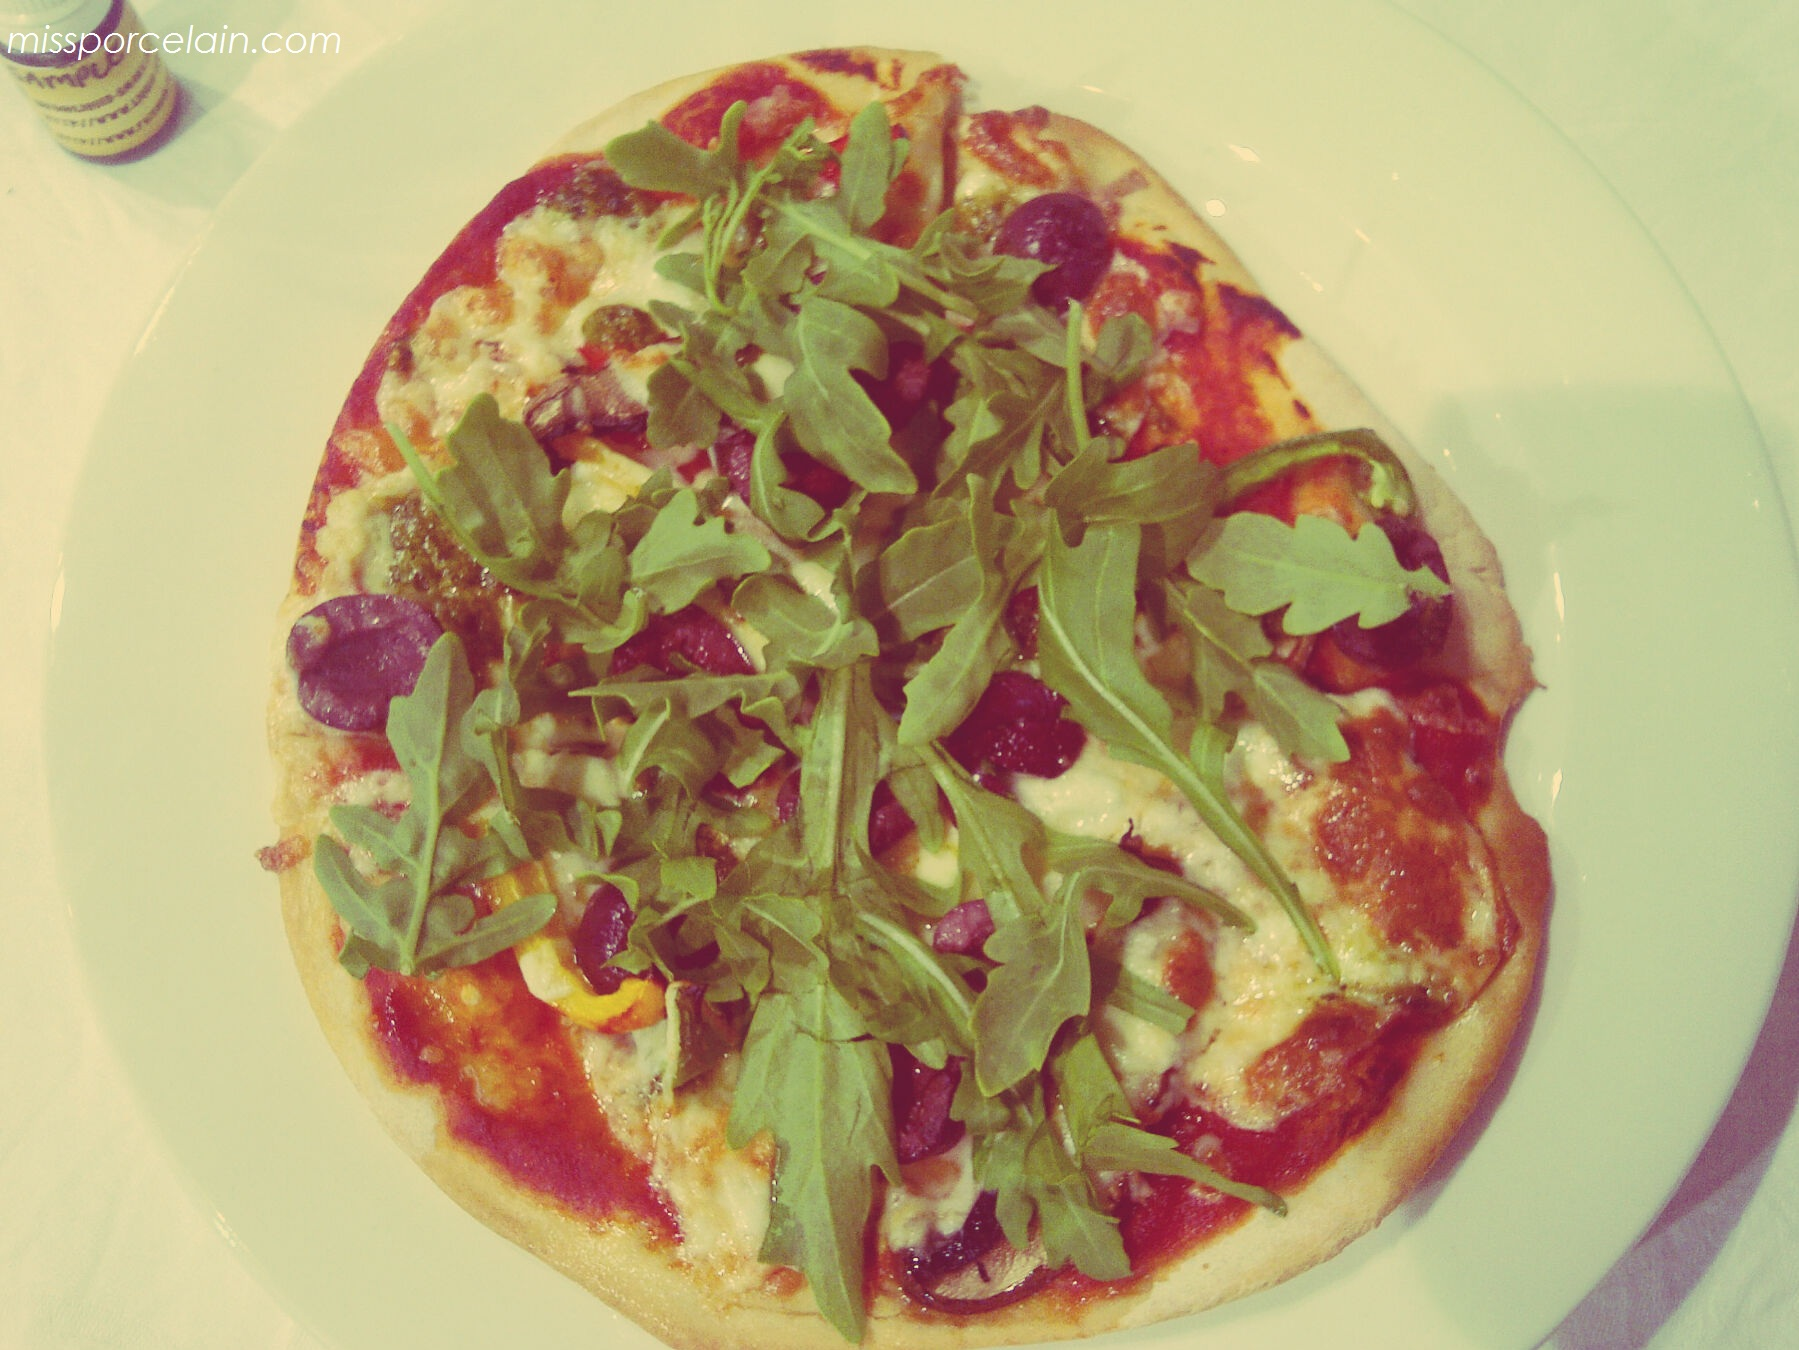 We all got to make our own pizza. I had peppers, mushrooms, olives, rocket & basil pesto on mine. YUM!